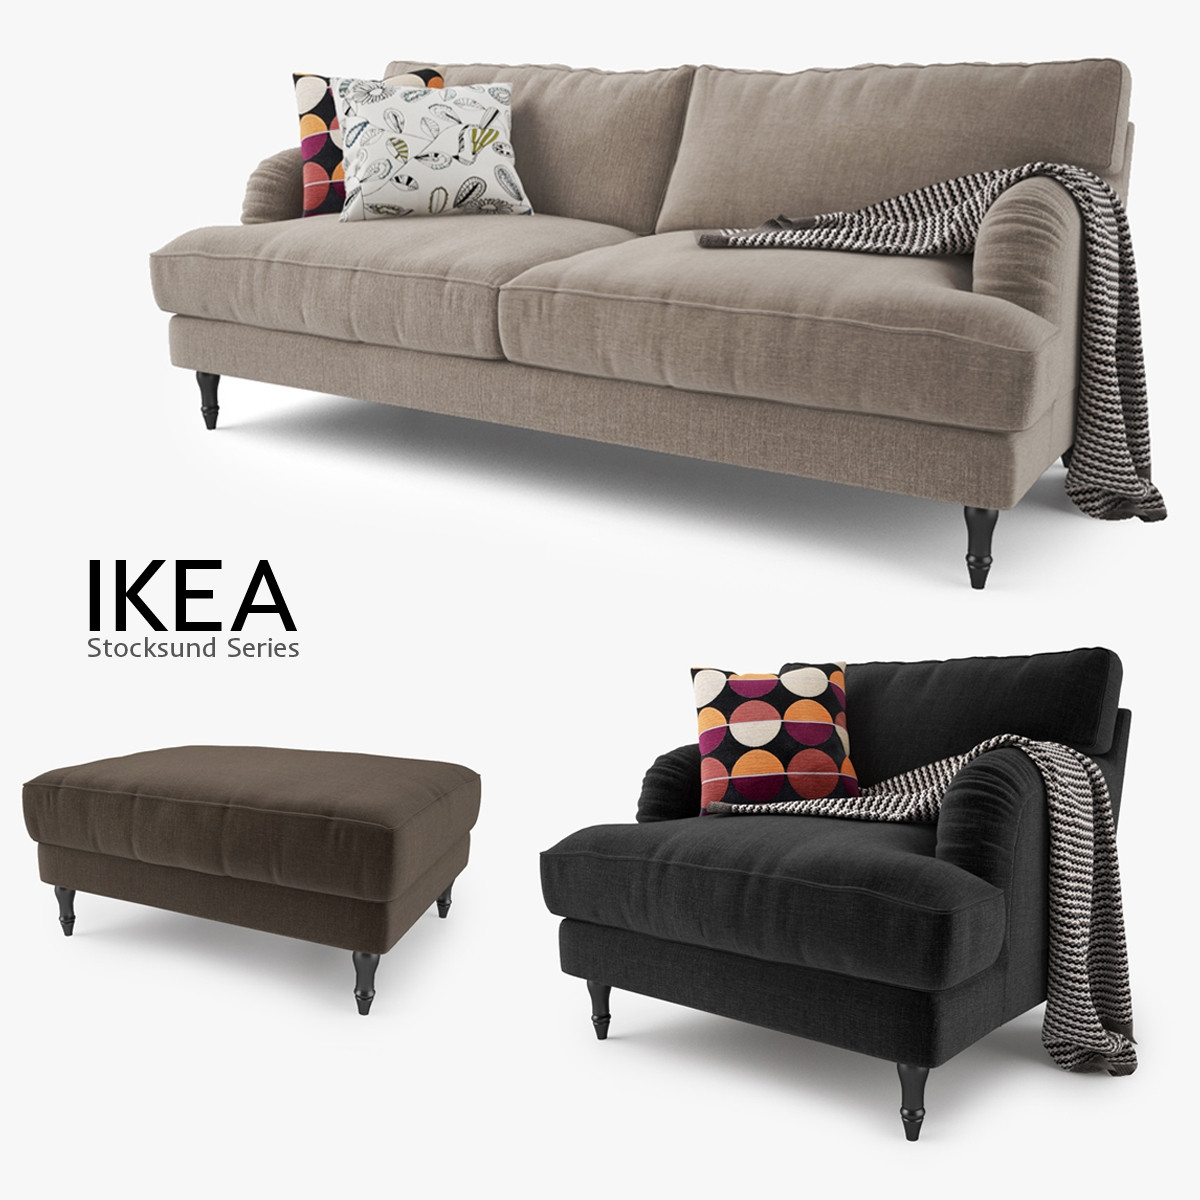 Stocksund Series Sofa Chair Max Throughout Sofa Chairs Ikea (Image 15 of 15)